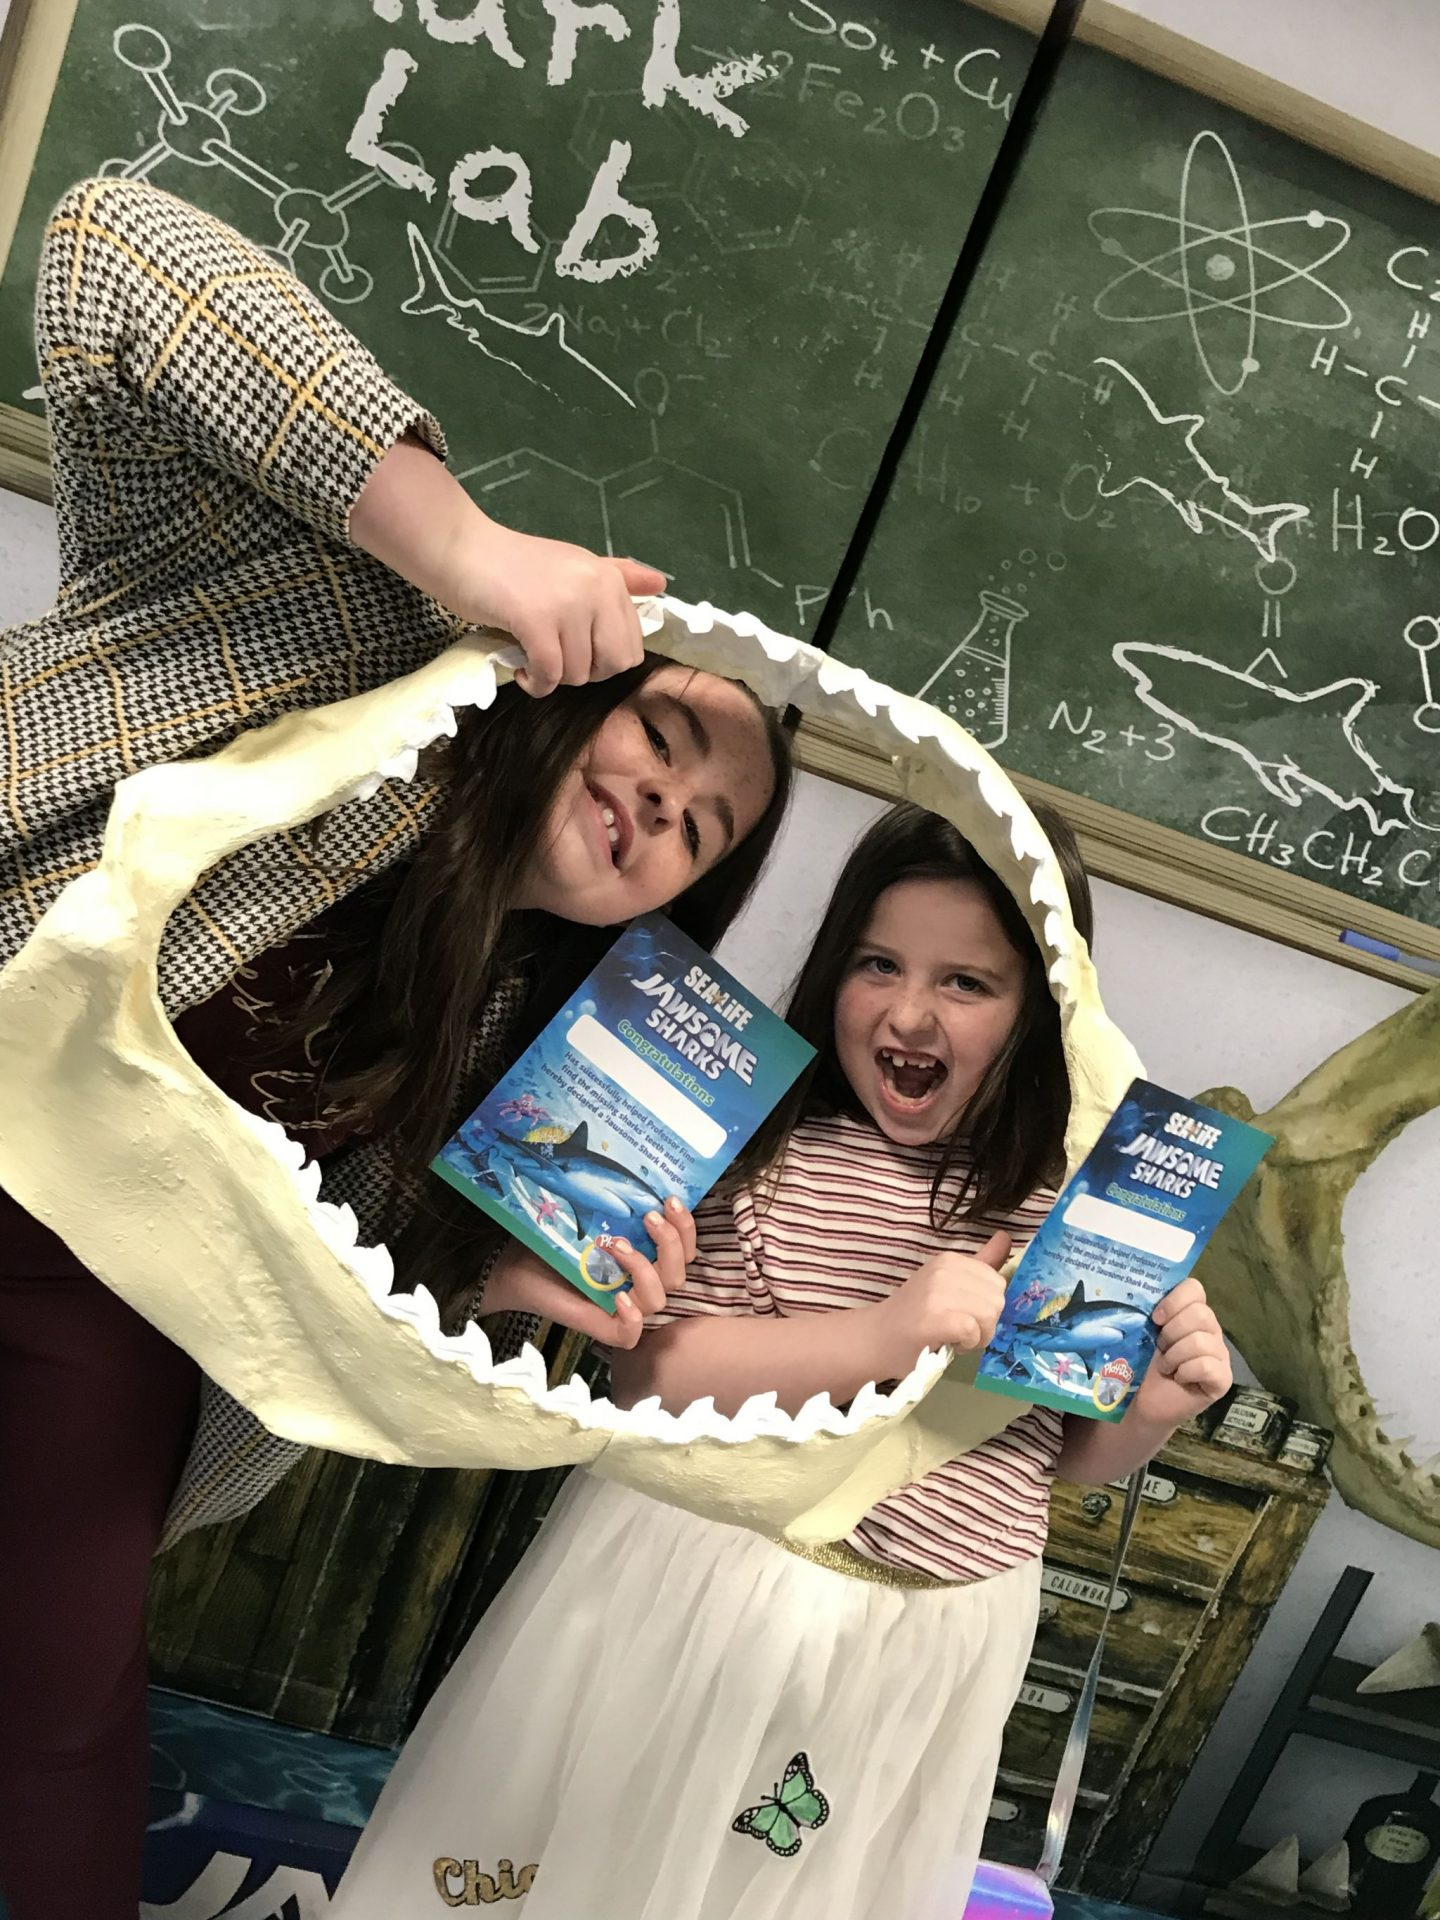 Jawesome sharks at Scarborough Sea Life Sanctuary with Play-Doh